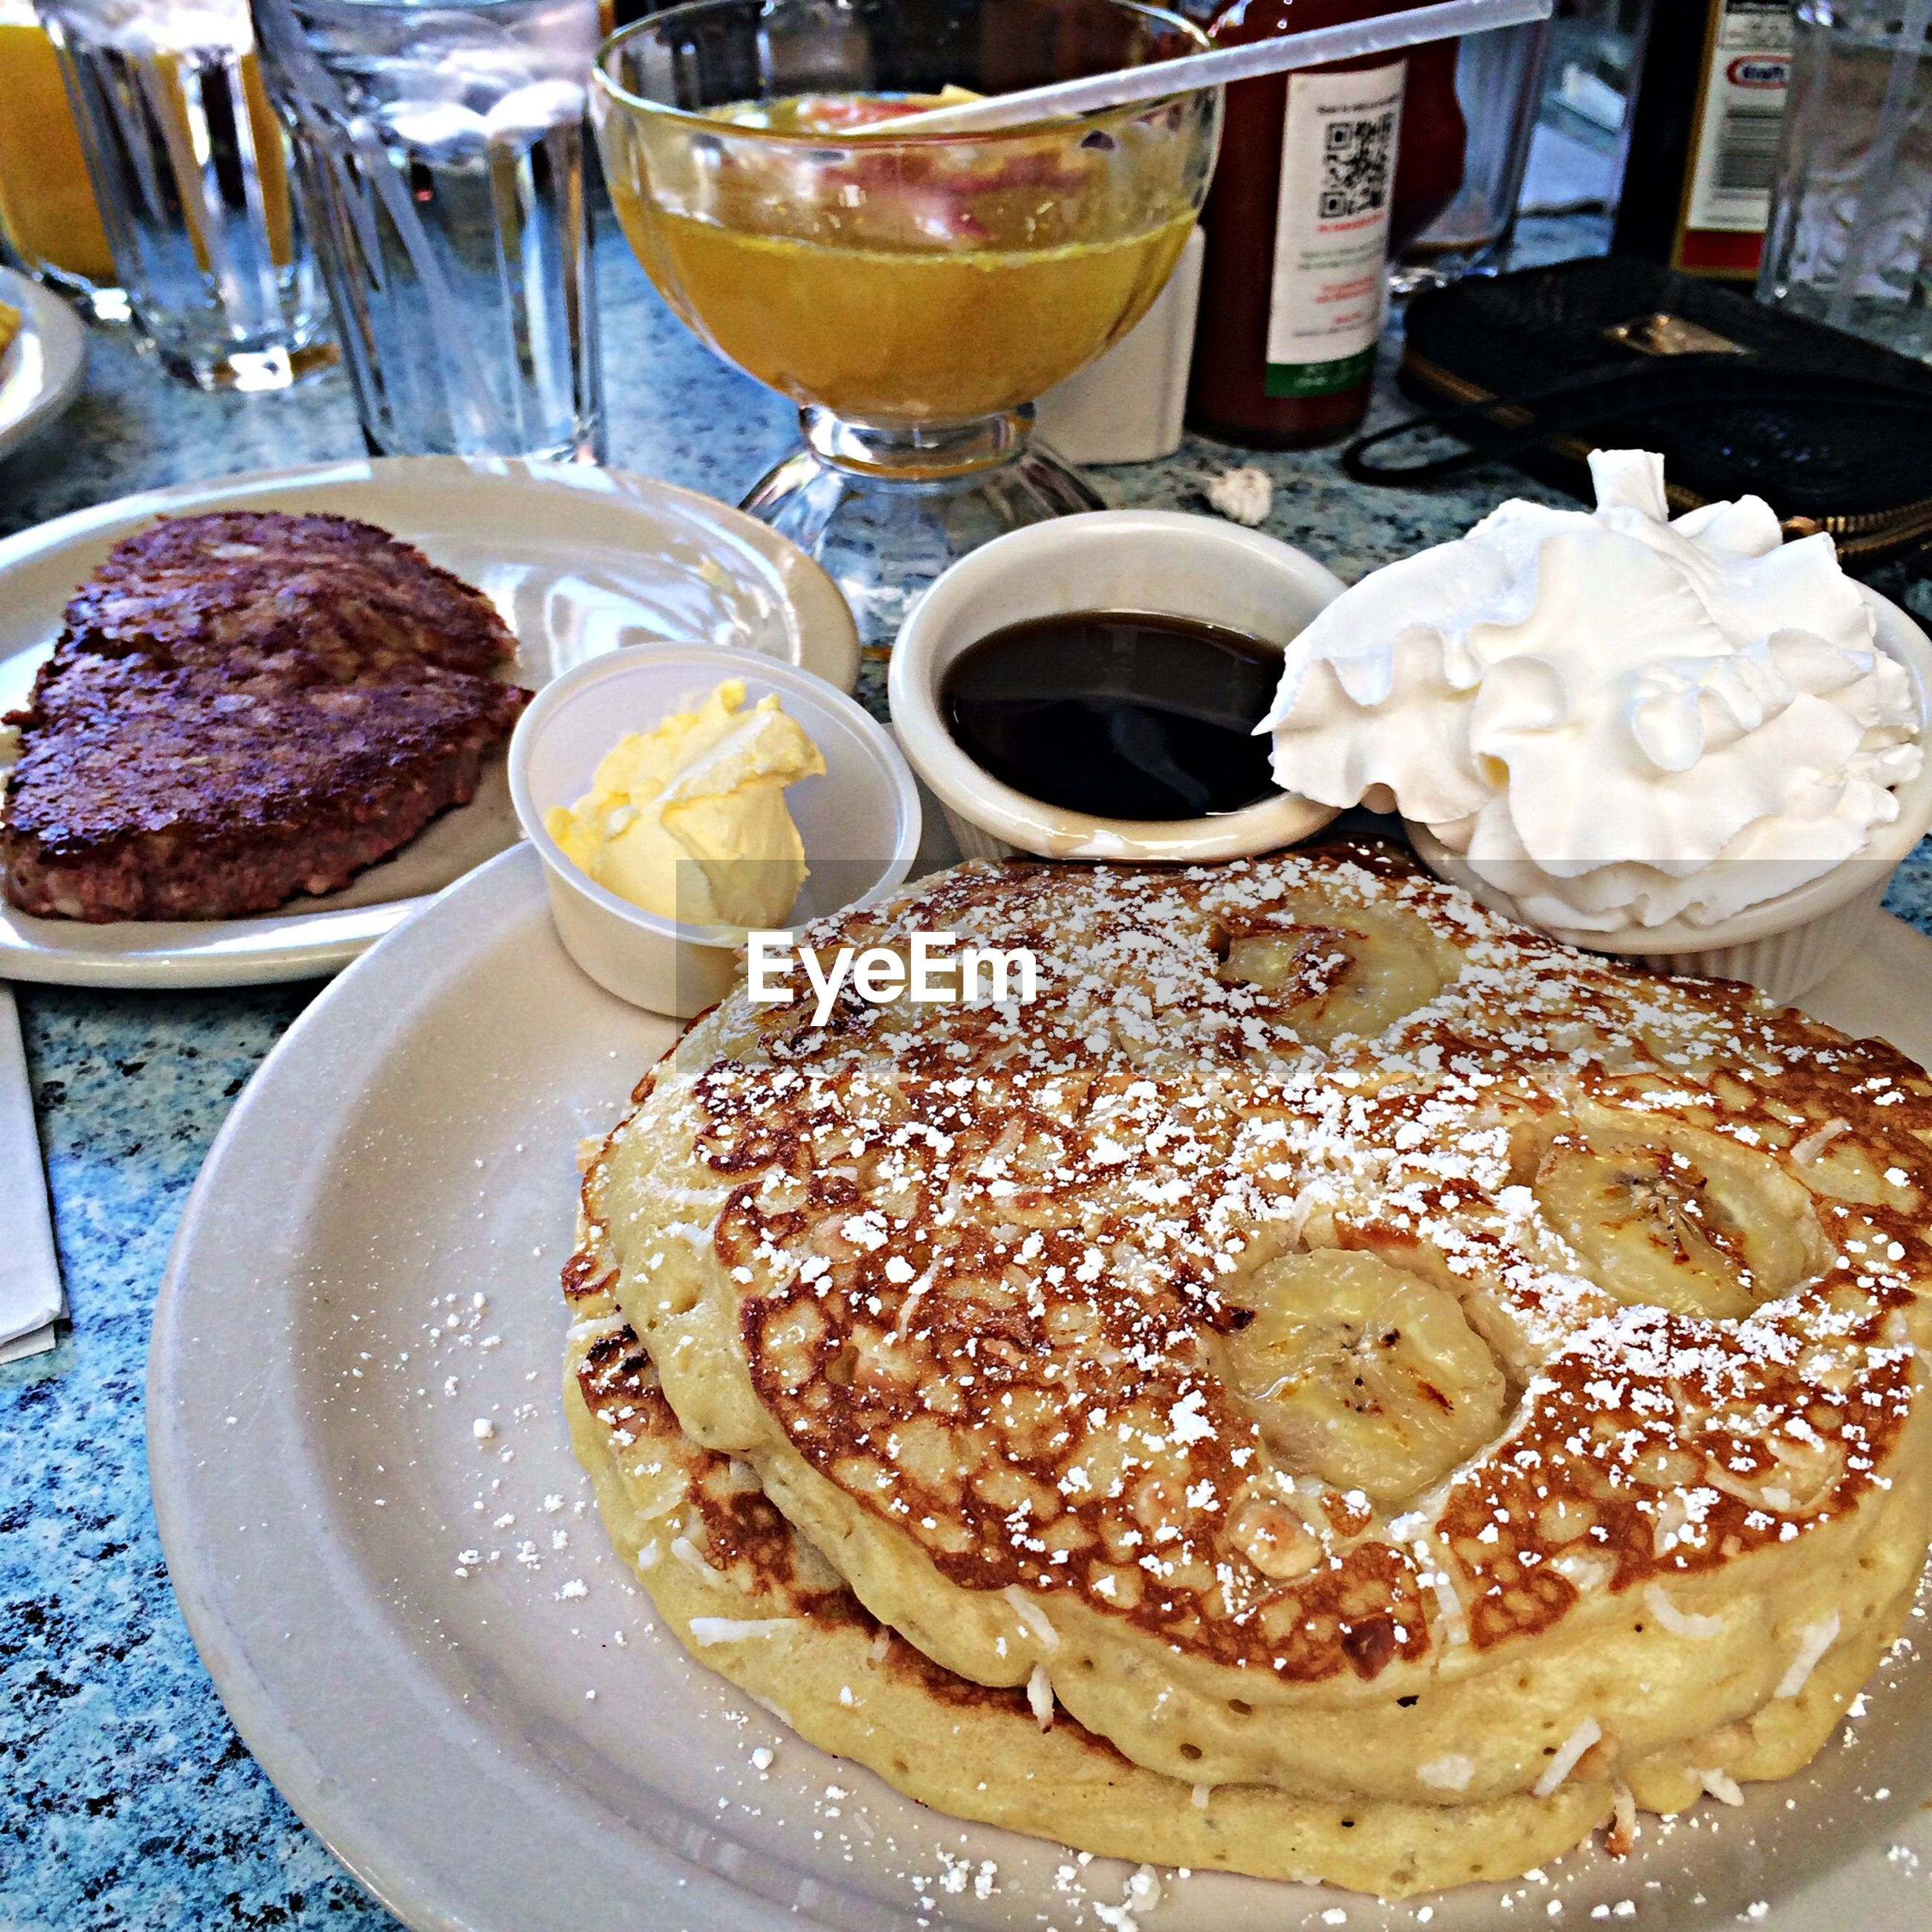 food and drink, food, freshness, indoors, sweet food, ready-to-eat, dessert, indulgence, still life, unhealthy eating, cake, temptation, plate, table, serving size, baked, drink, close-up, high angle view, refreshment